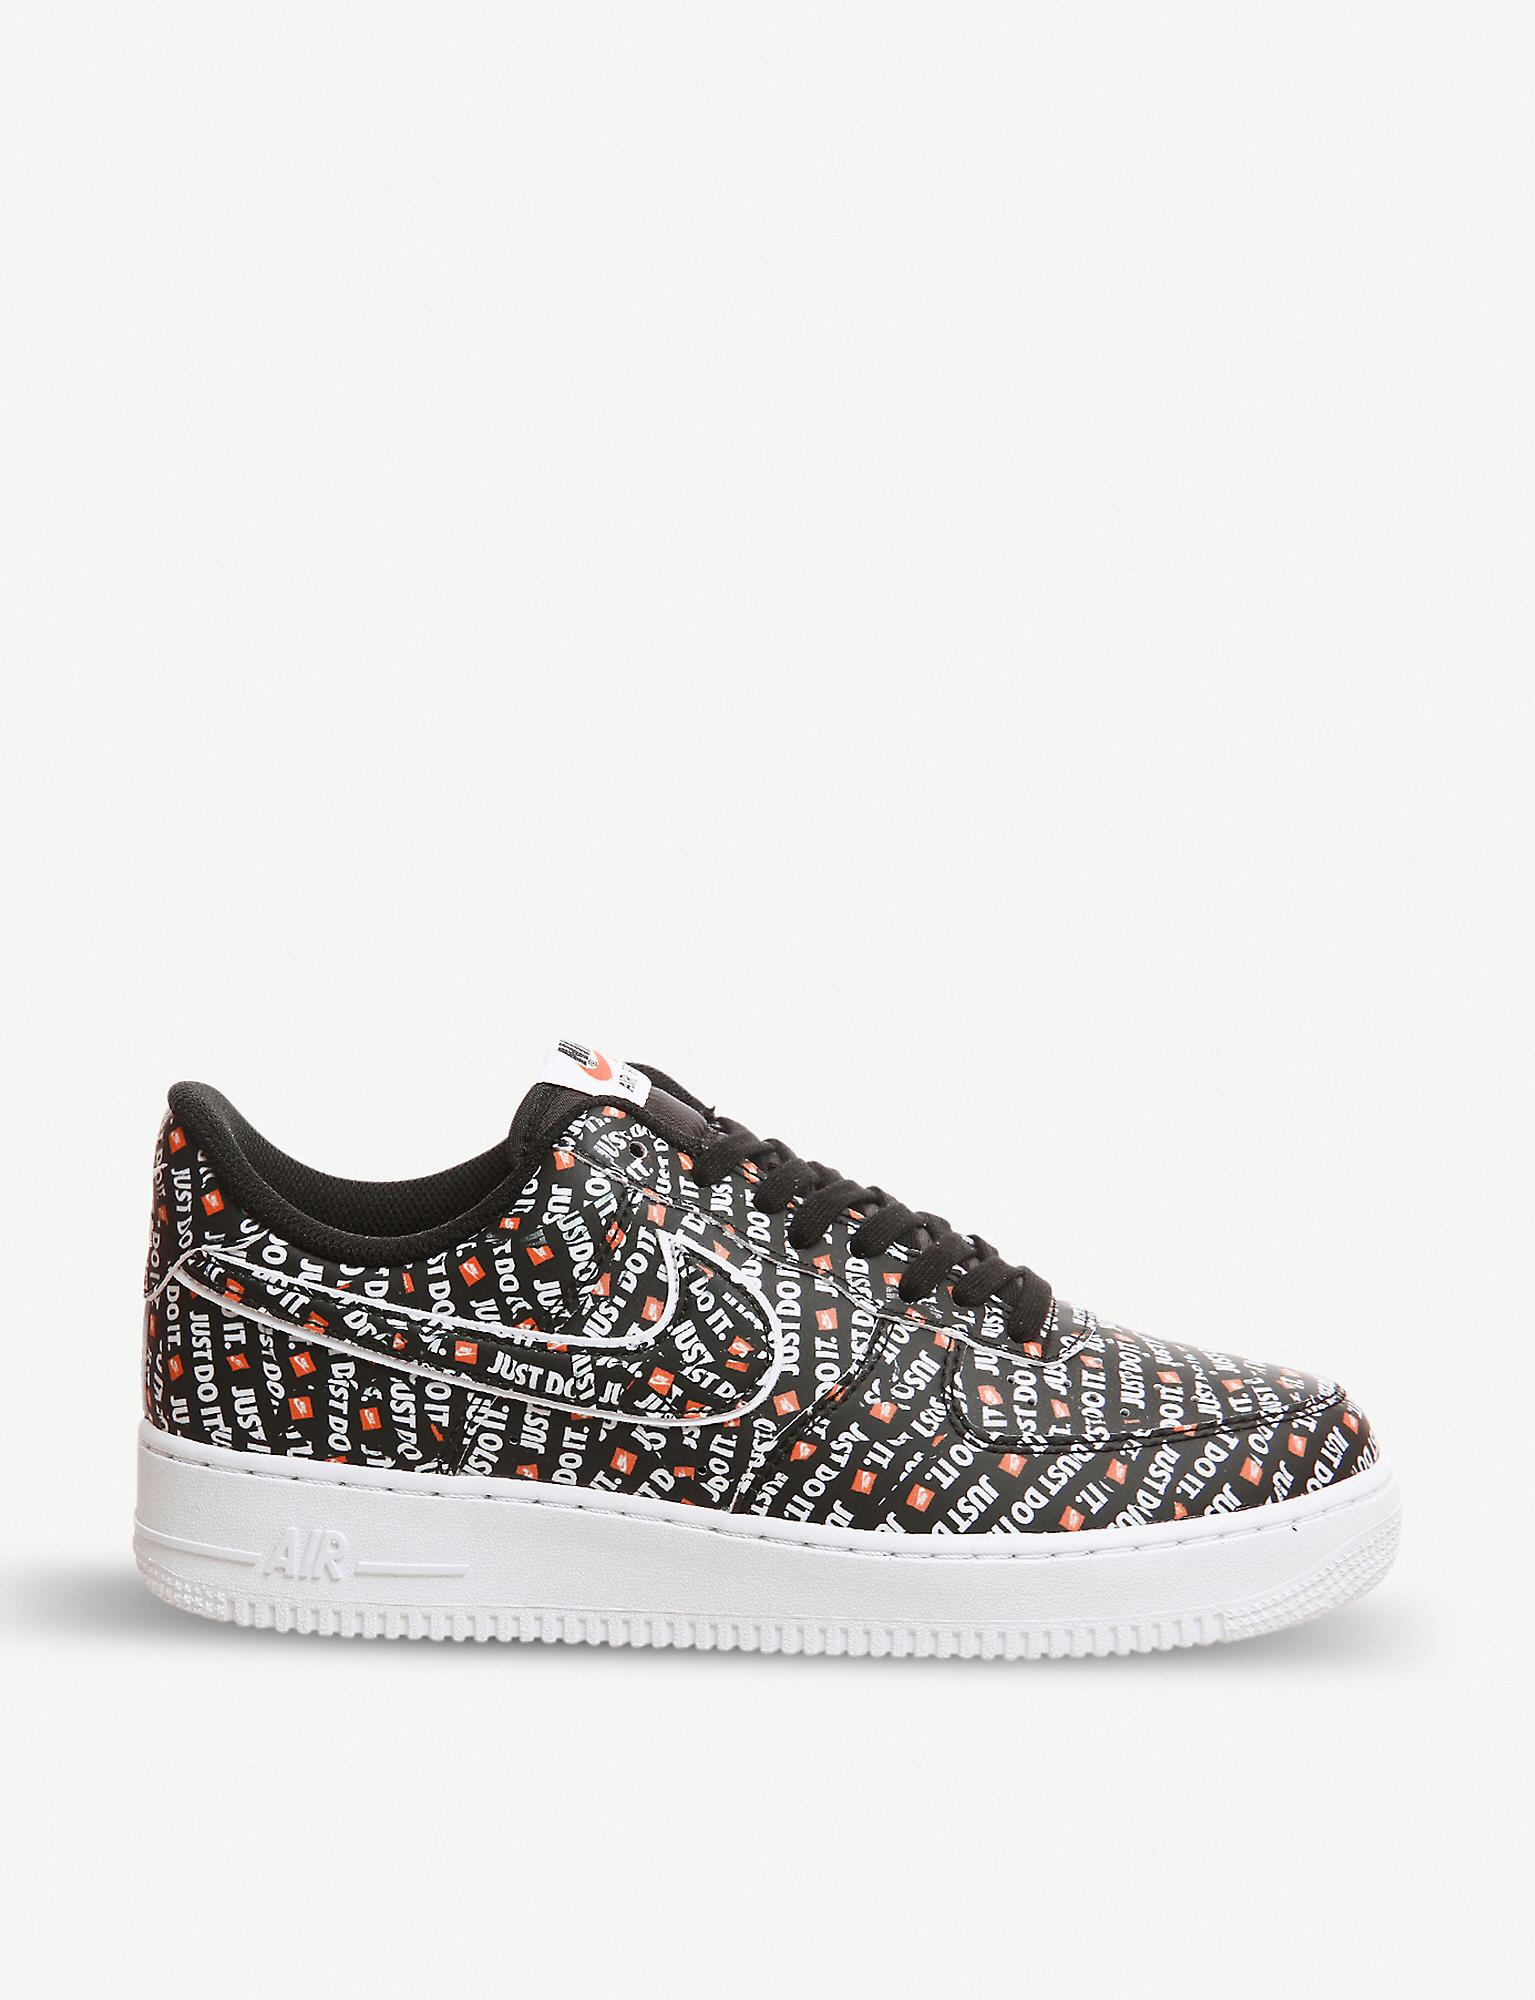 Nike Air Force 1 07 Just Do It Leather